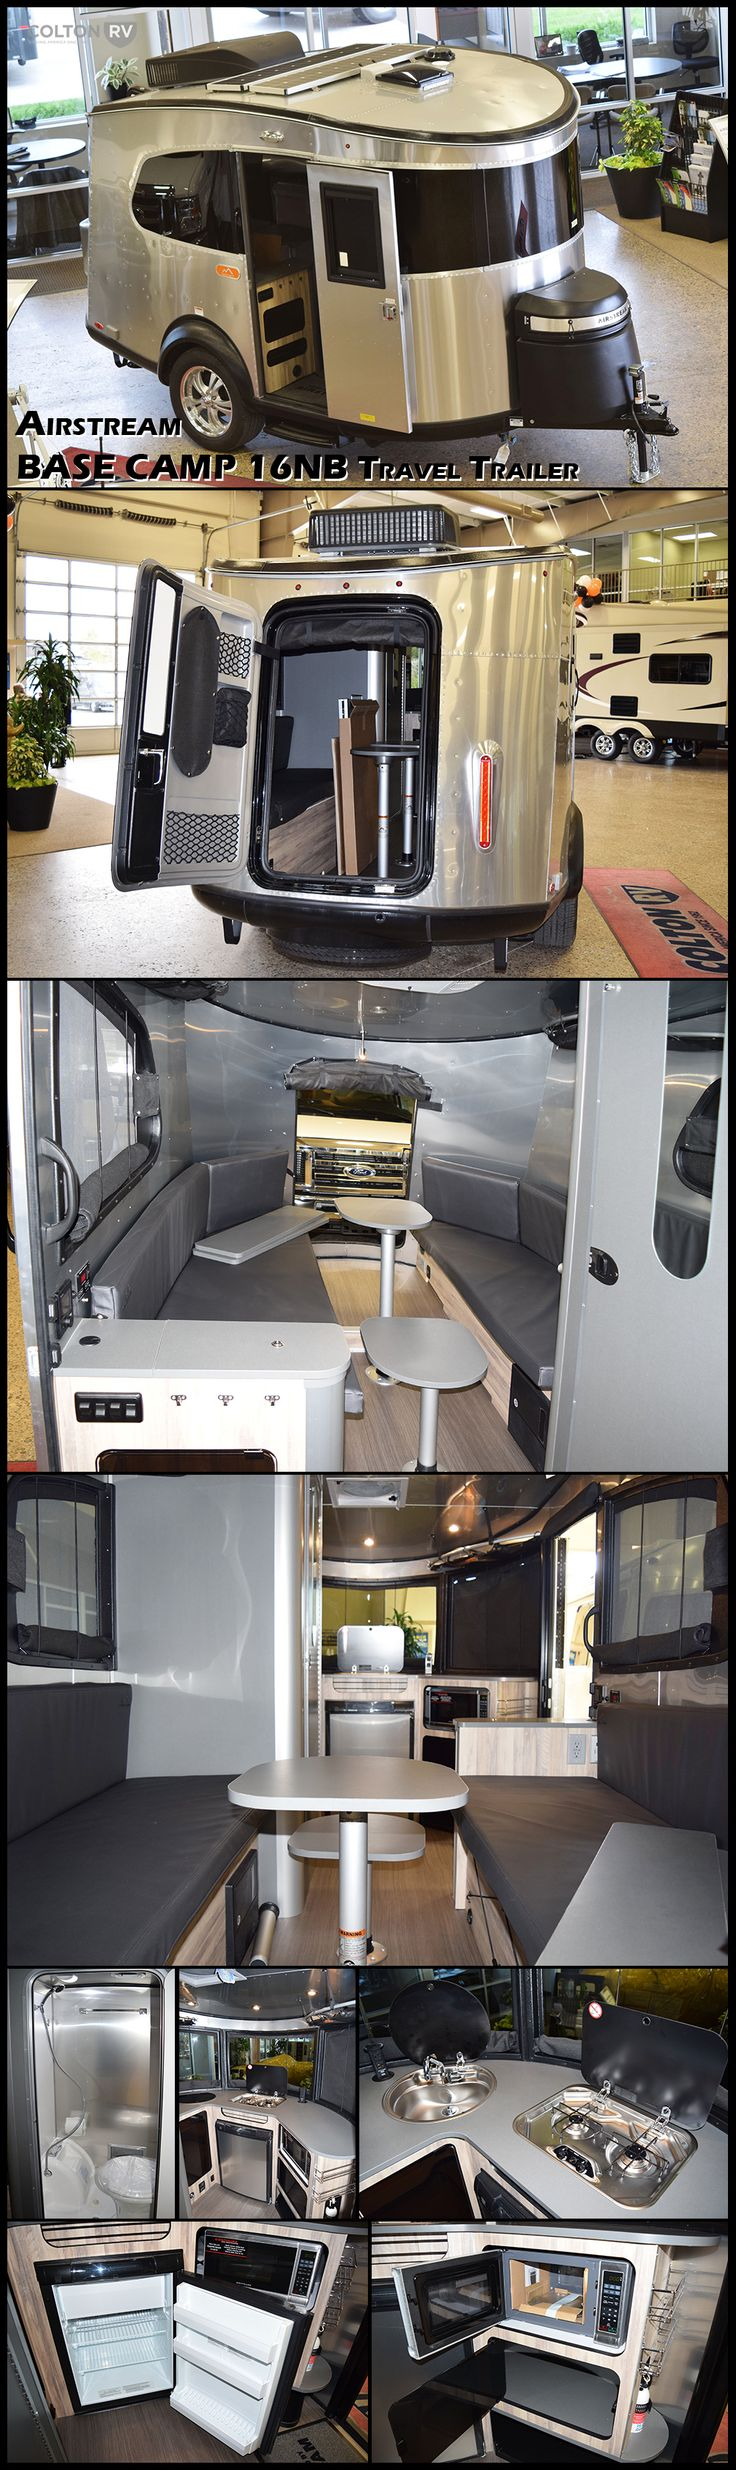 Welcome the newest addition to the Airstream family, the 2017 BASECAMP 16NB travel trailer. Hit the road, hit the trails, and get going. Basecamp is full of features that help you fuel up for the day, then clean up and sack out when it's all said and done. From the rear hatch for your gear to the on-board restroom to the convertible living space that forms a relaxing bed, it's all right there with you, along for the ride.